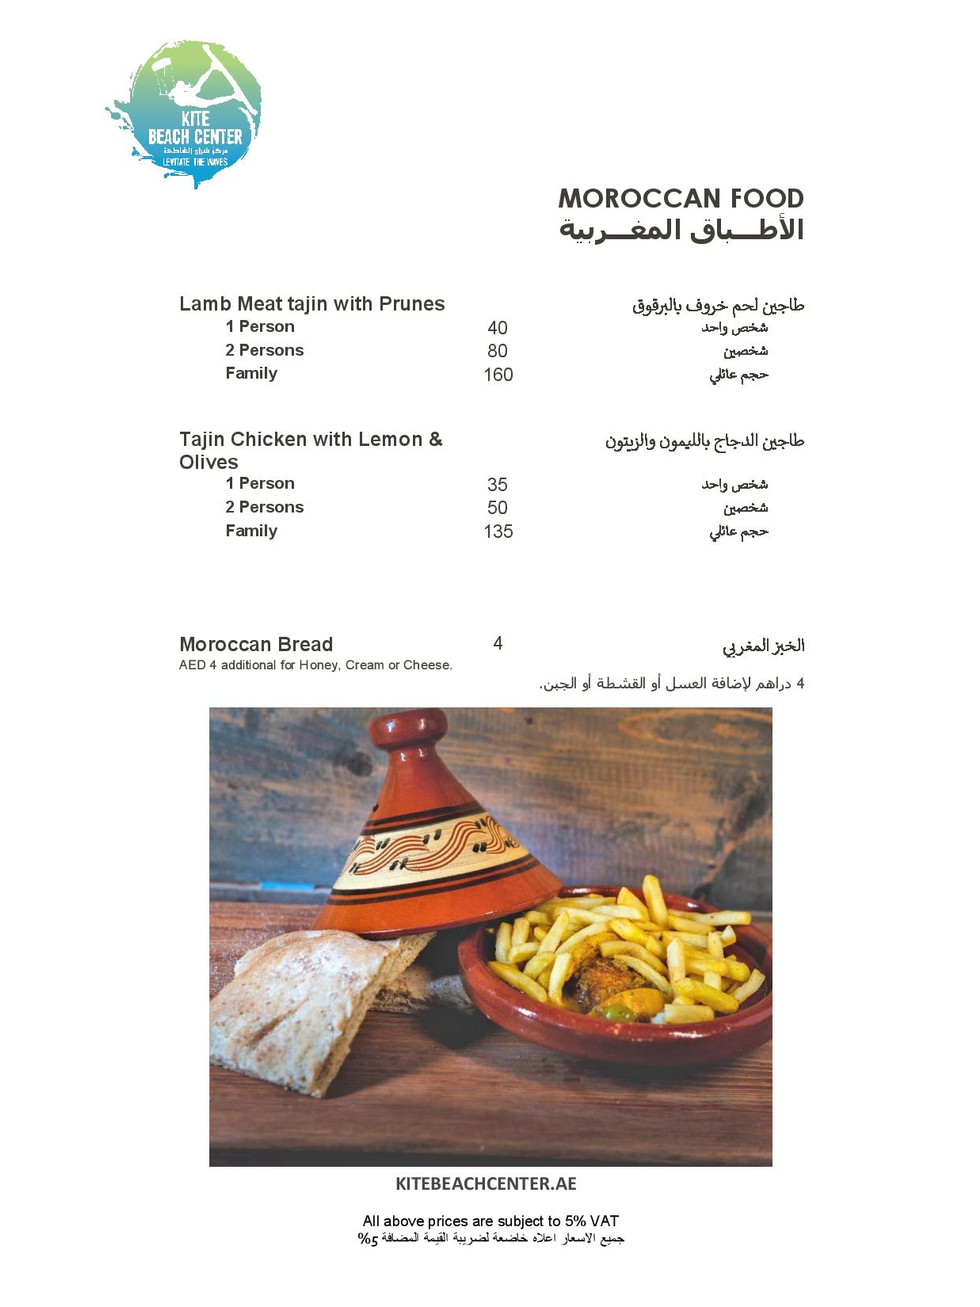 MORROCAN new latest-page-001.jpg